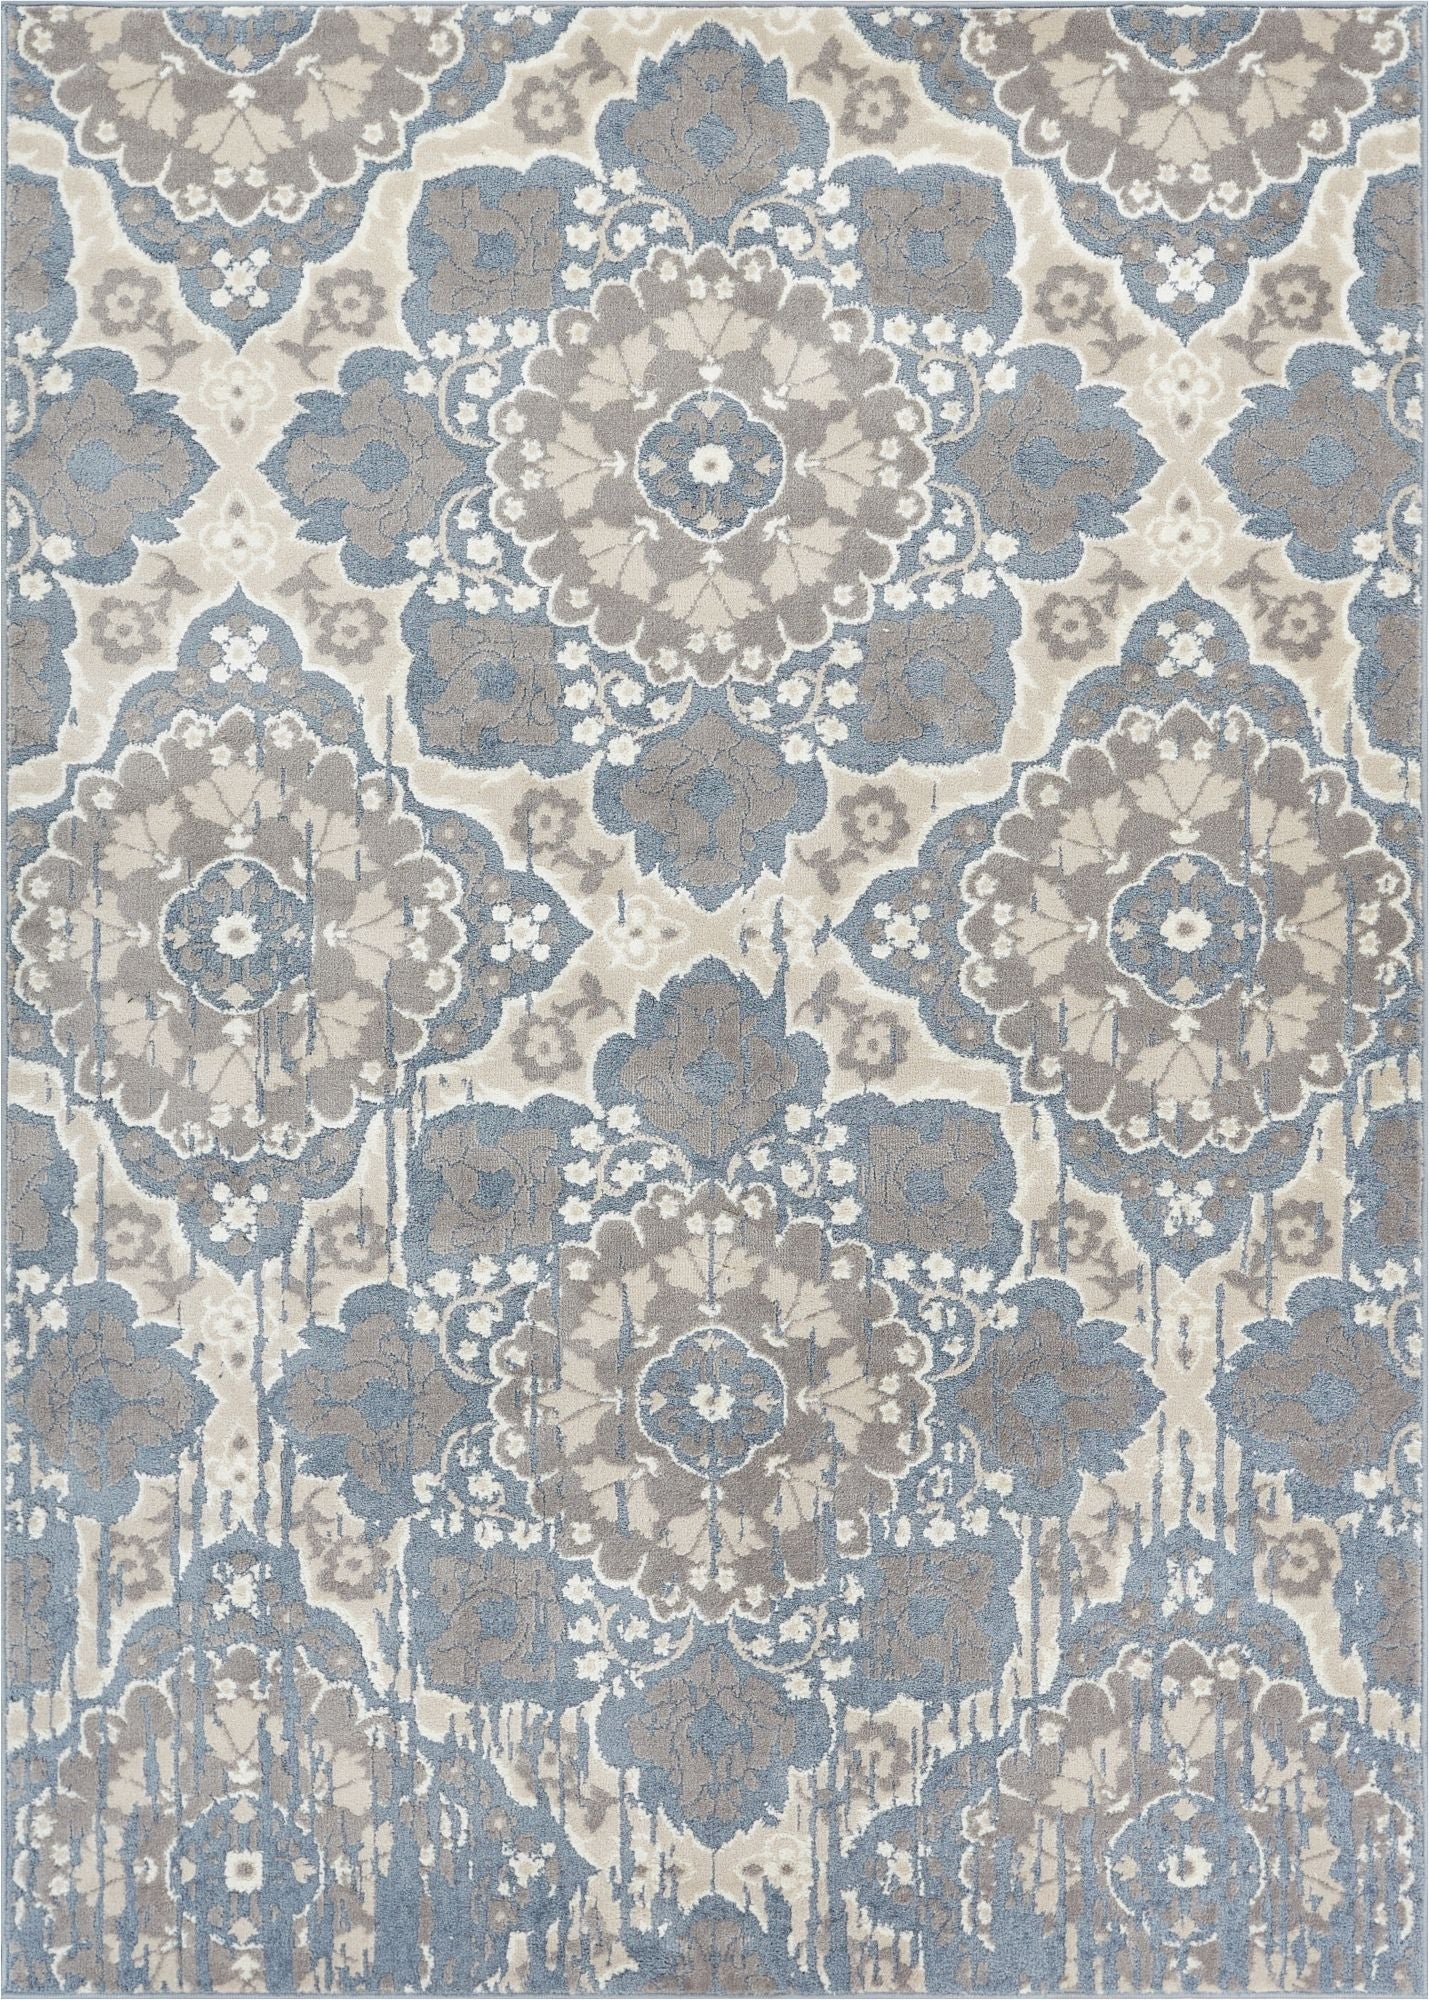 Melody Blue Modern Rug Well Woven